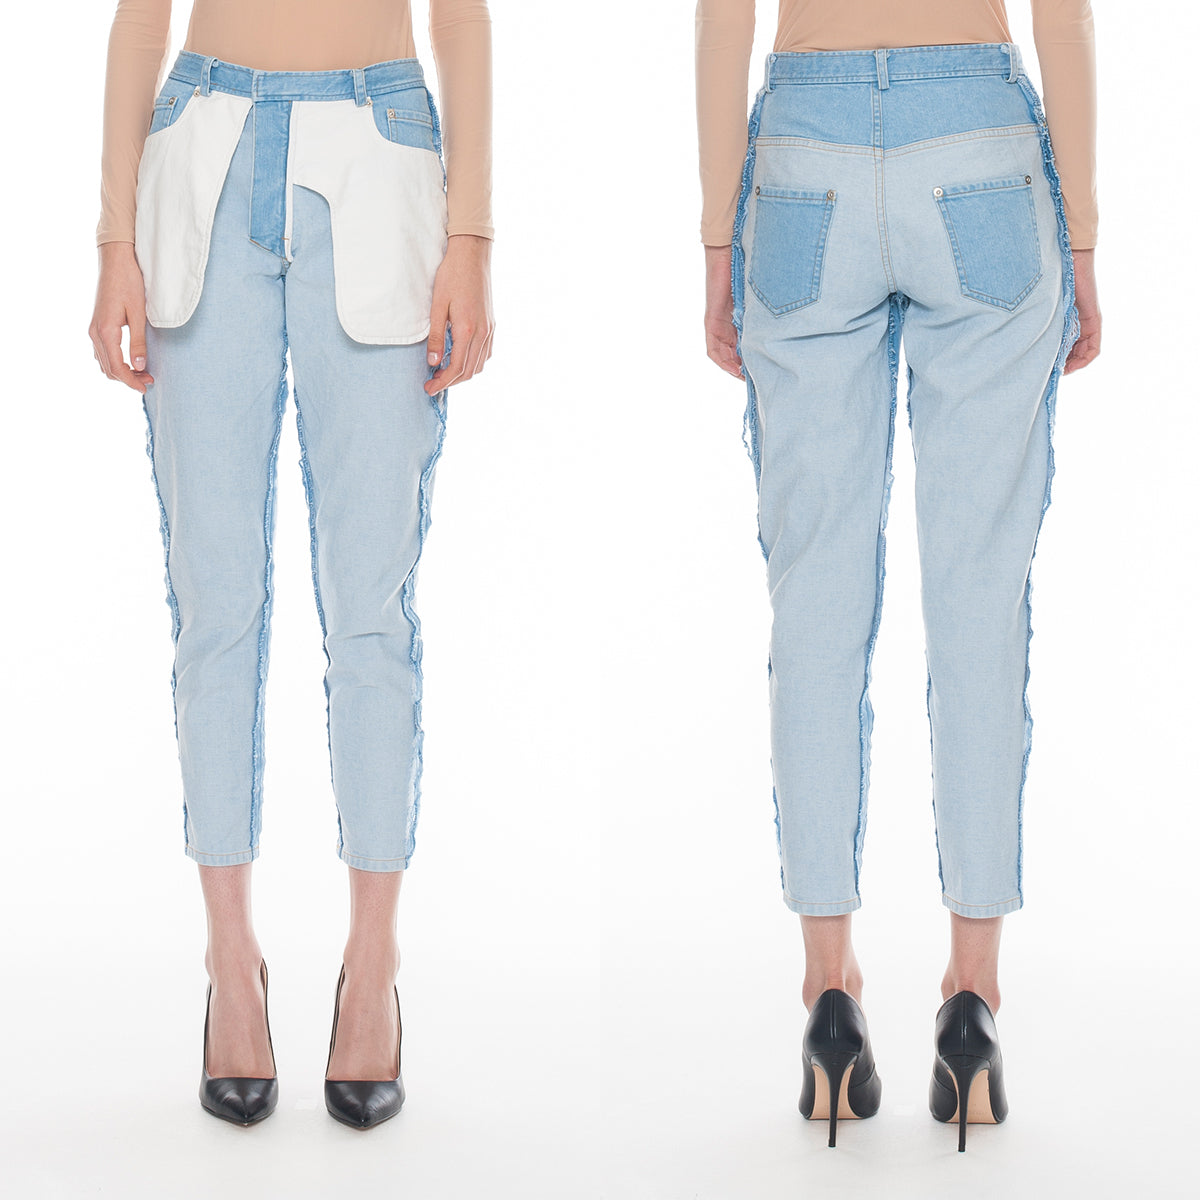 Inside Out Jeans Bottoms DRESSEDUNDRESSED - NOLM - Clothes Online - nolmau.com - Sydney-Australia Online Shopping